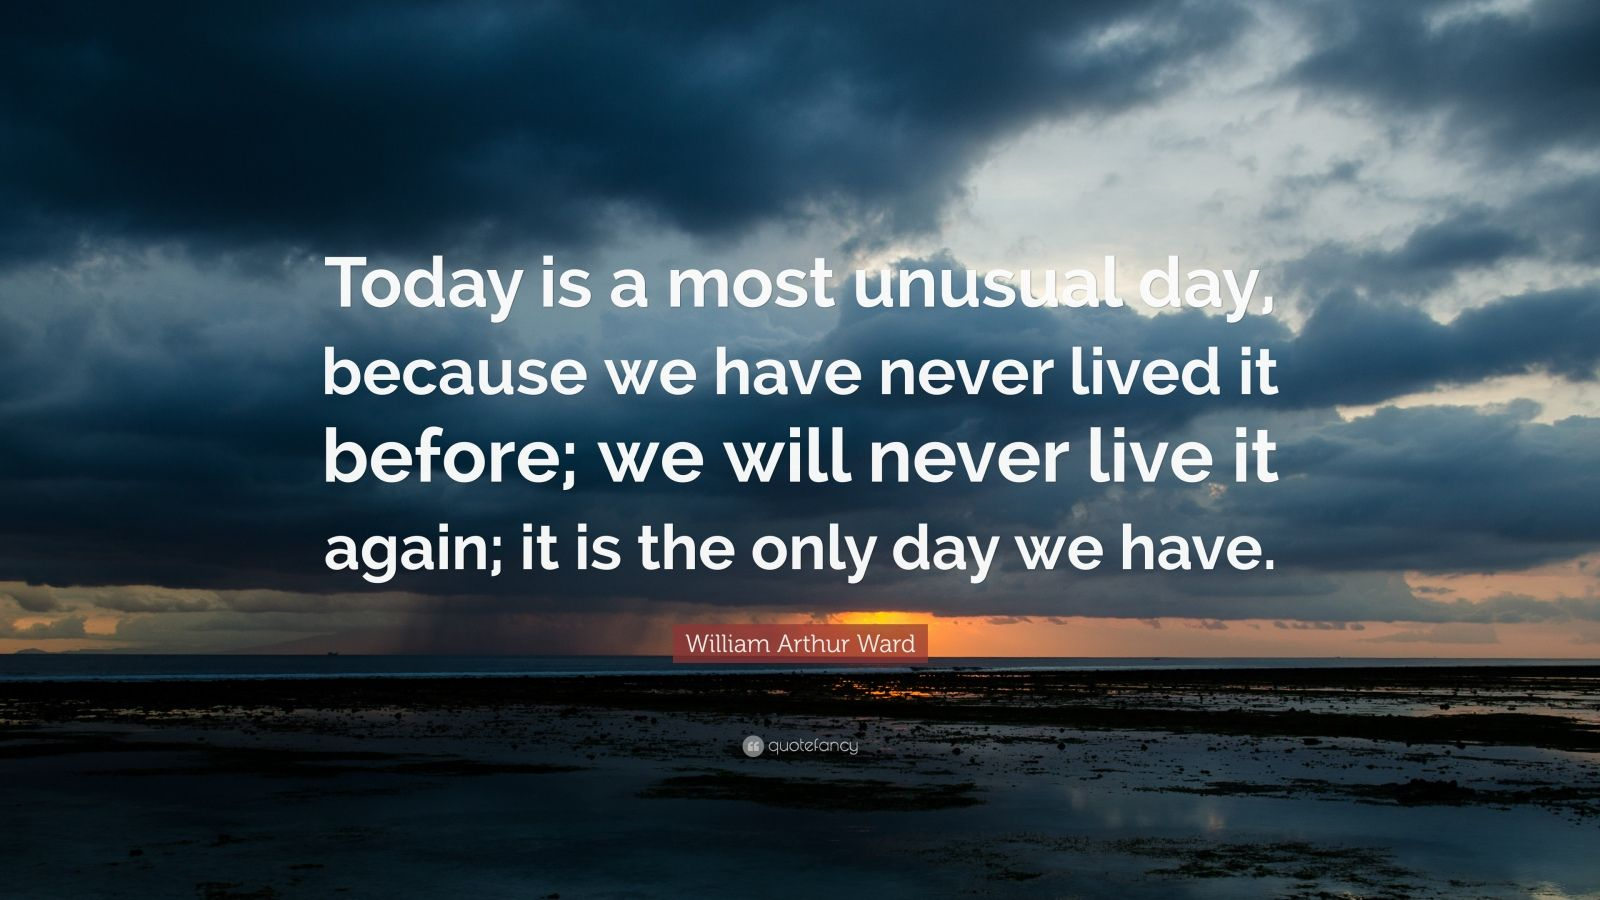 """William Arthur Ward Quote: """"Today is a most unusual day, because we have never lived it before; we will never live it again; it is the only day we have."""""""